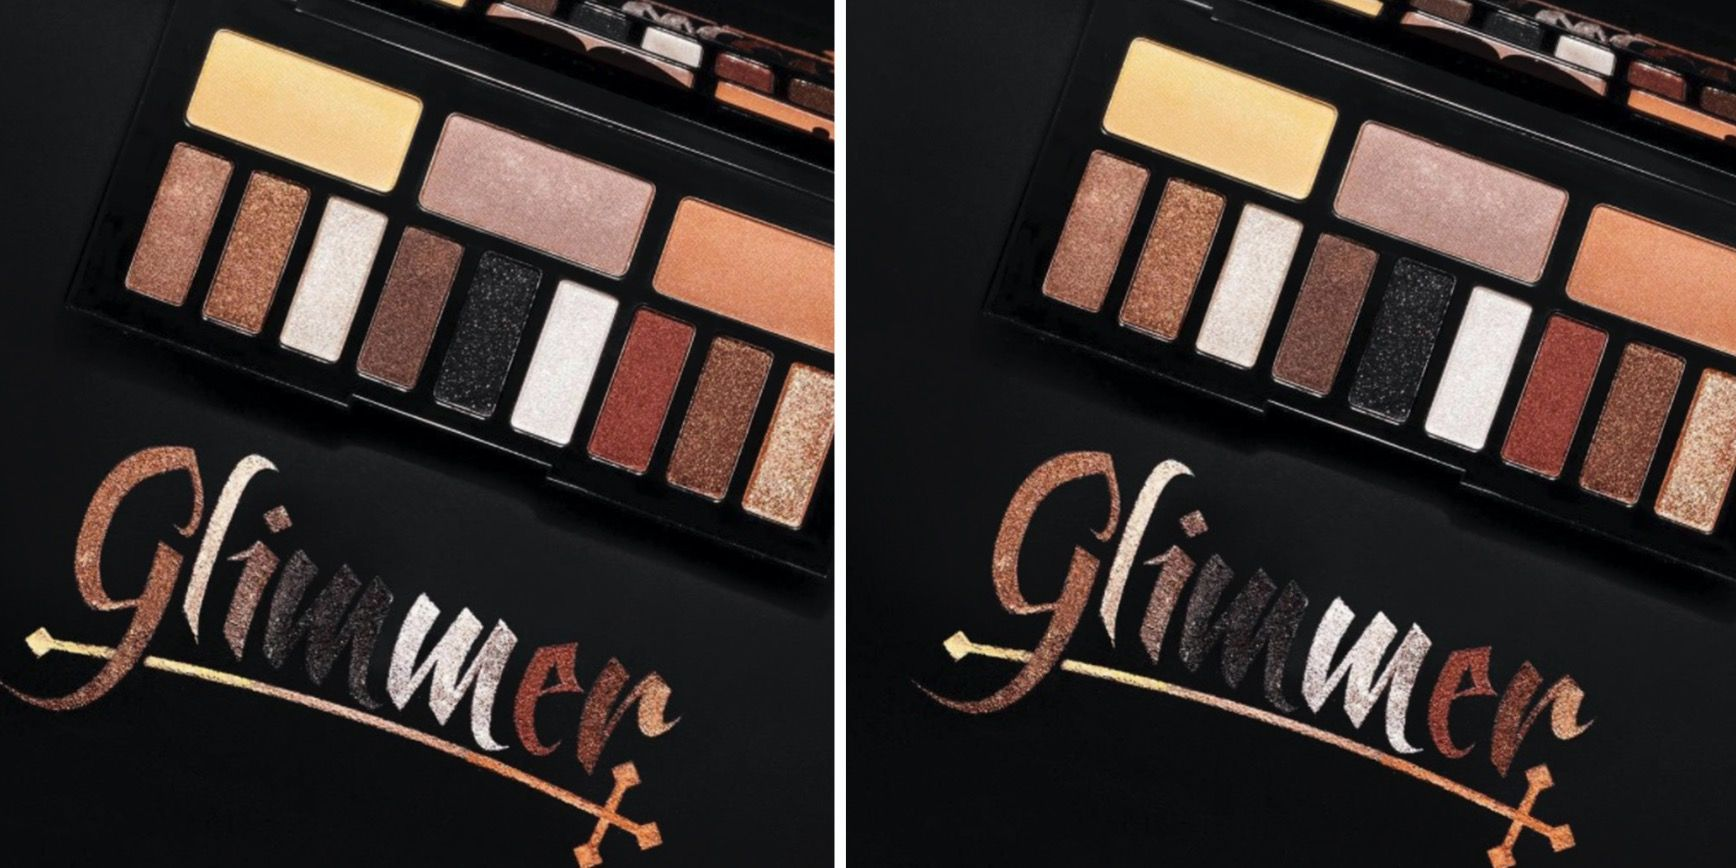 Kat Von D's new Shade & Light GLIMMER palette will make you feel all the feels